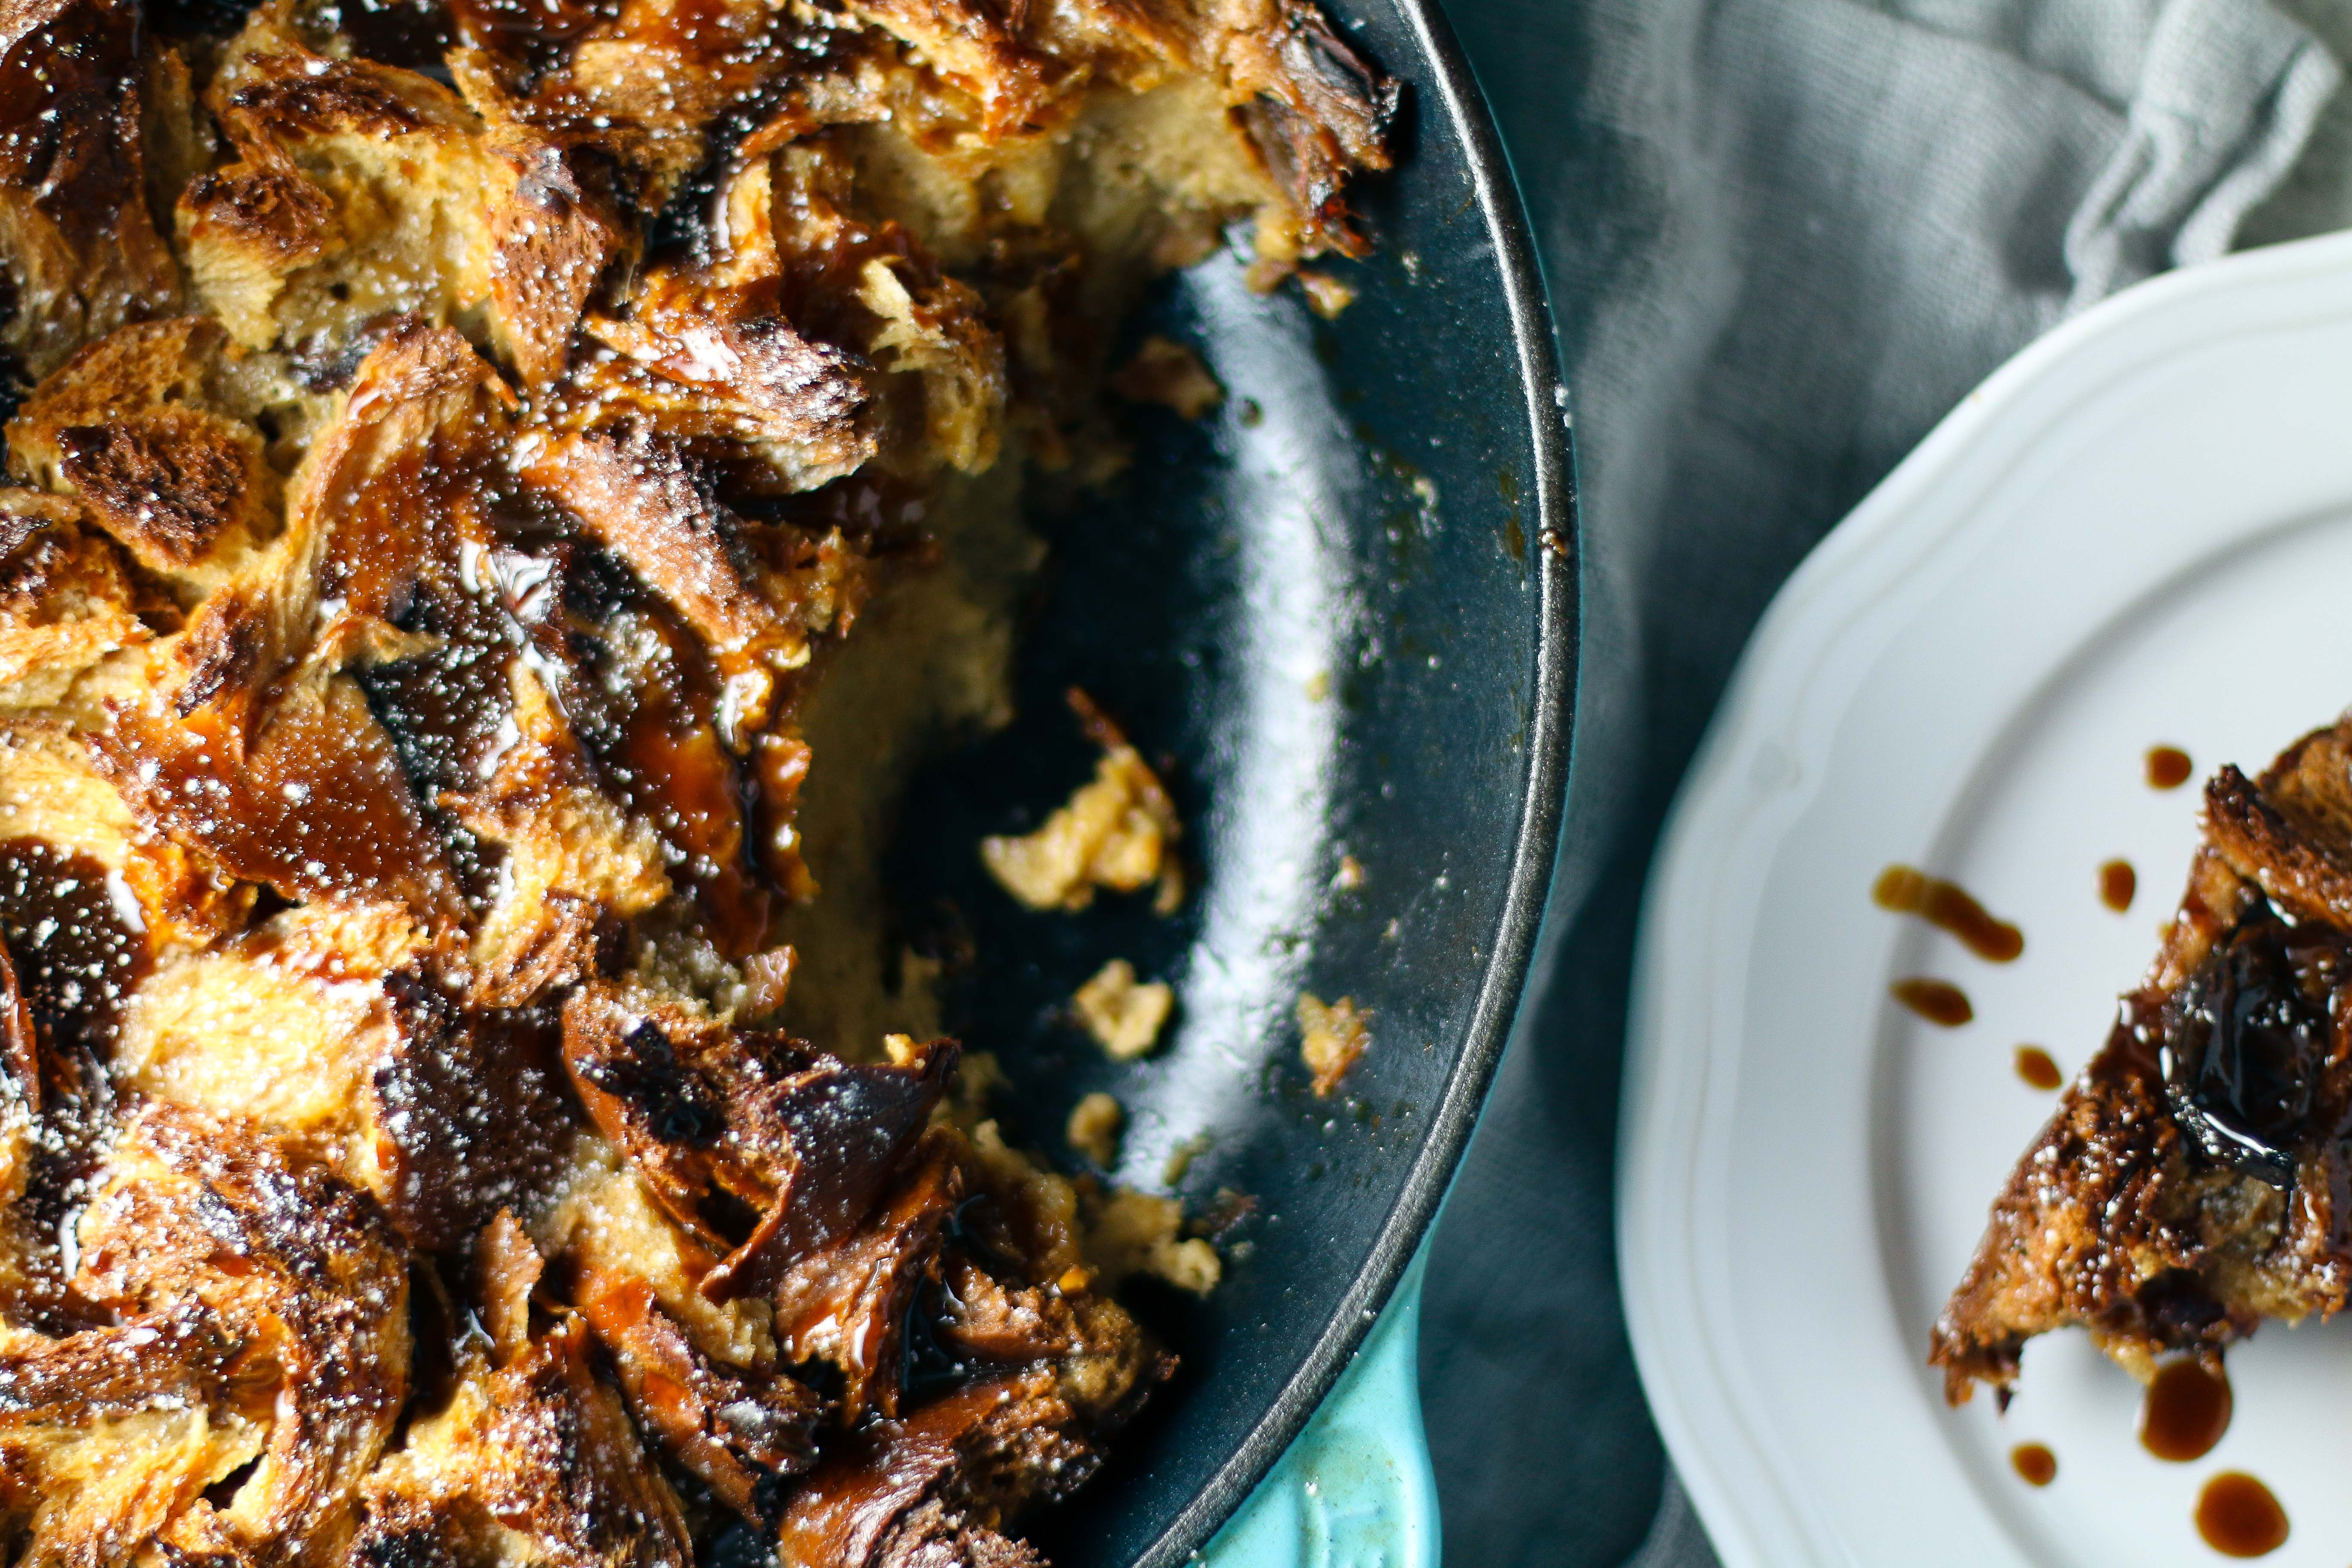 Whiskey Caramel Bread Pudding with Medjool Dates | I Will Not Eat Oysters